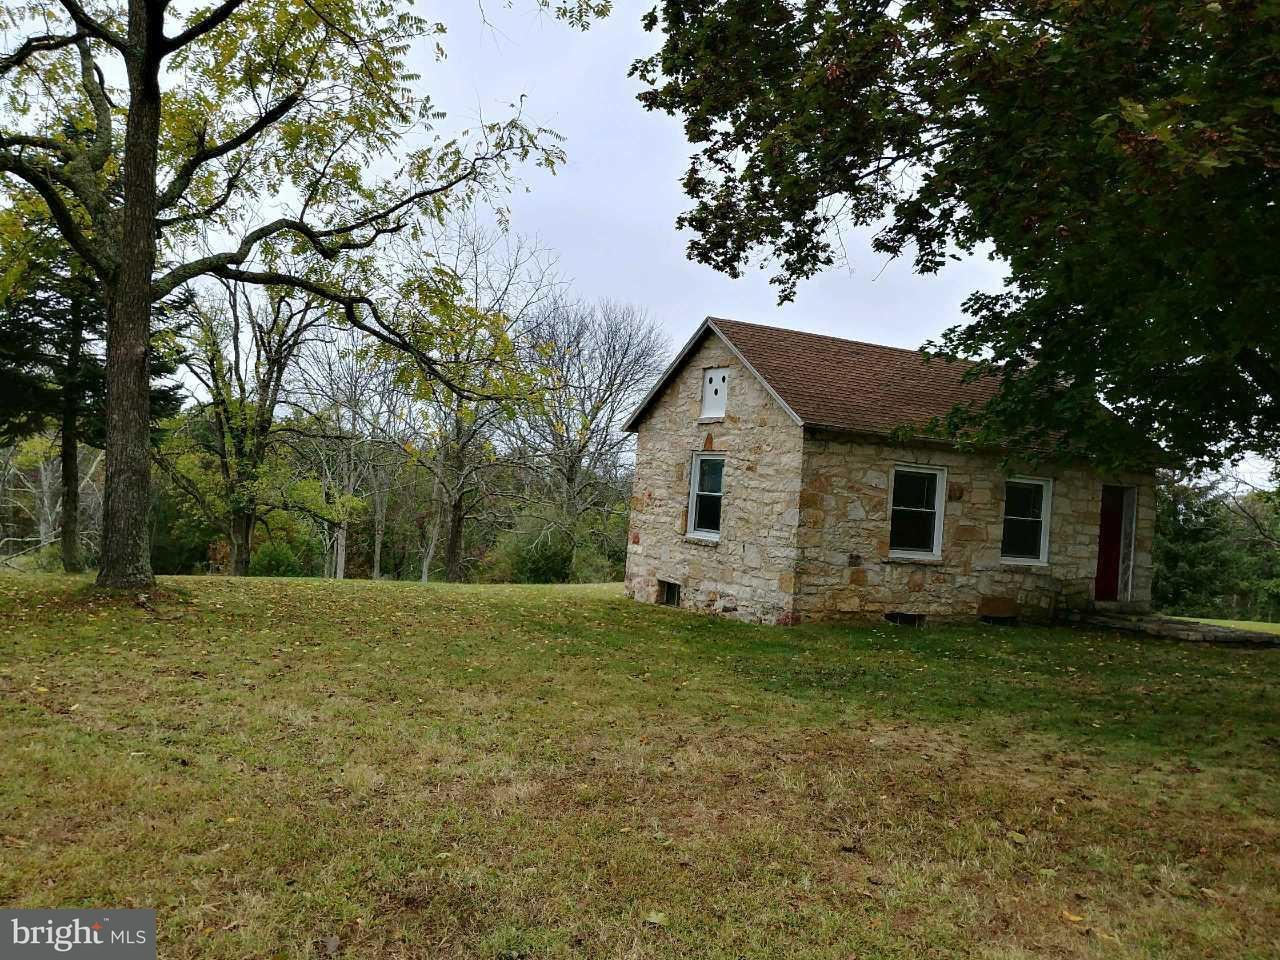 Single Family Home for Sale at 872 LICKING CREEK ROAD Road 872 LICKING CREEK ROAD Road Mercersburg, Pennsylvania 17236 United States